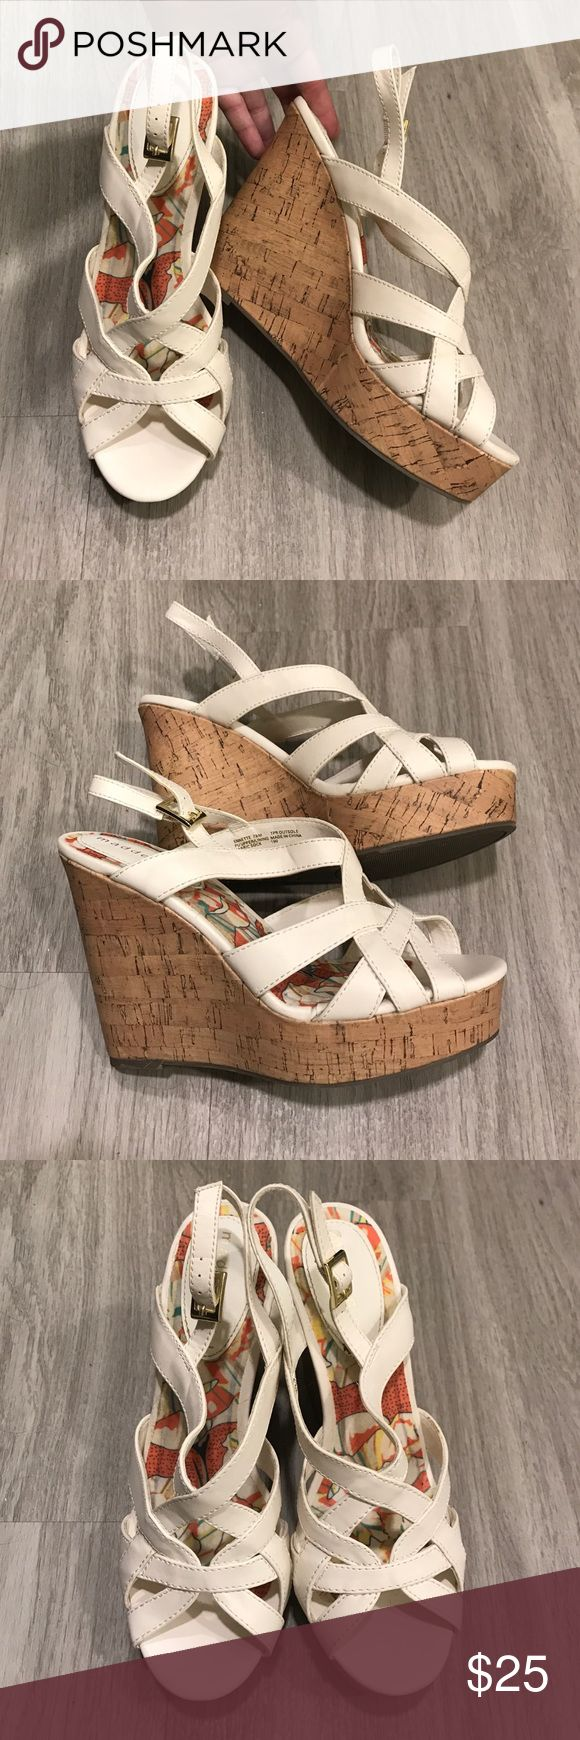 Madden Girl Strappy Wedge Sandals, White Super cute, but I don't wear heels often enough. These are very sturdy and well-made, much heavier than cheap wedges are. Very comfortable. Only worn once or twice. Madden Girl Shoes Wedges